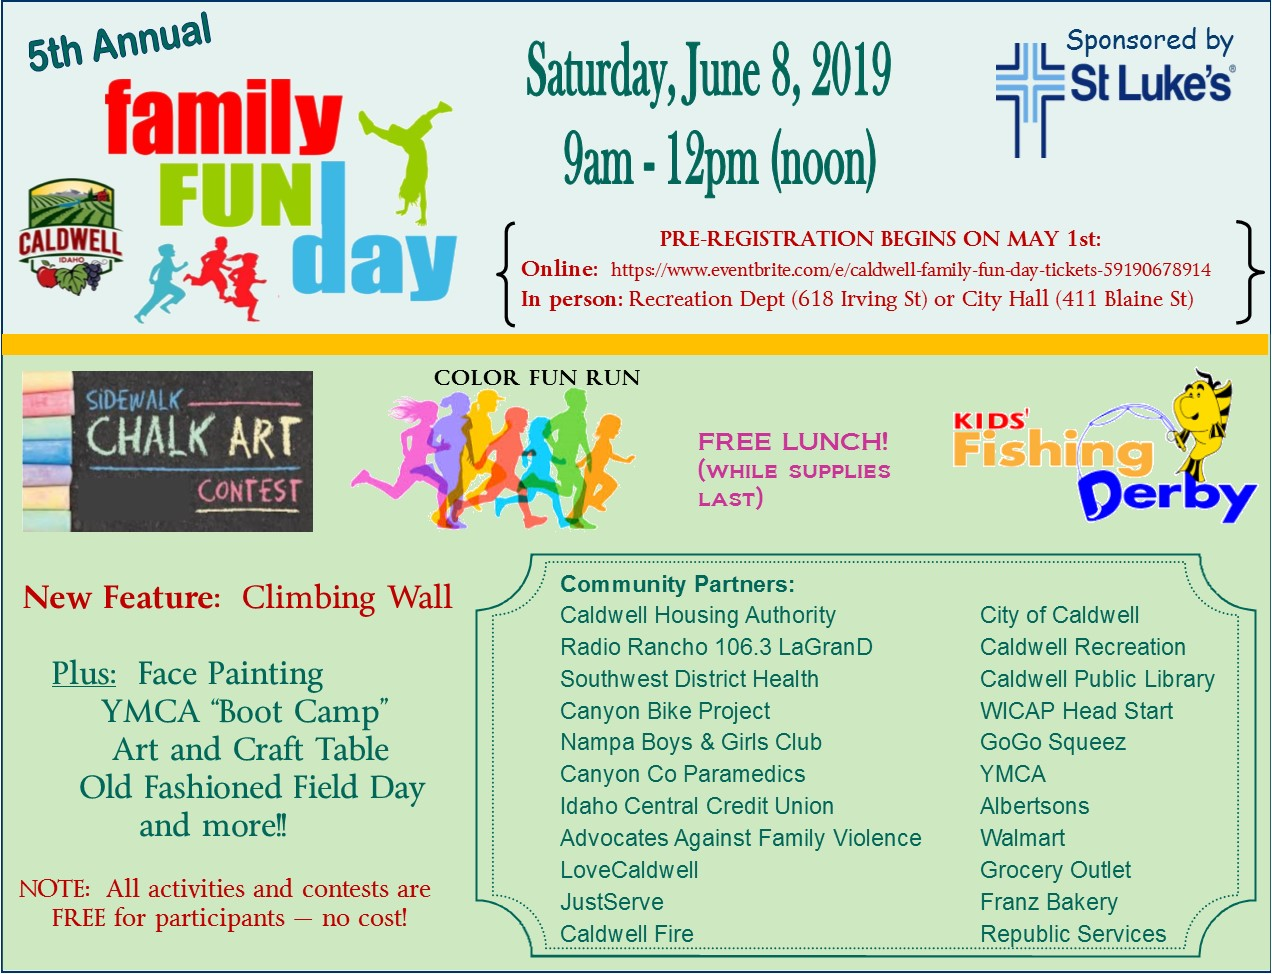 Family Fun Day information.english.June 8, 2019